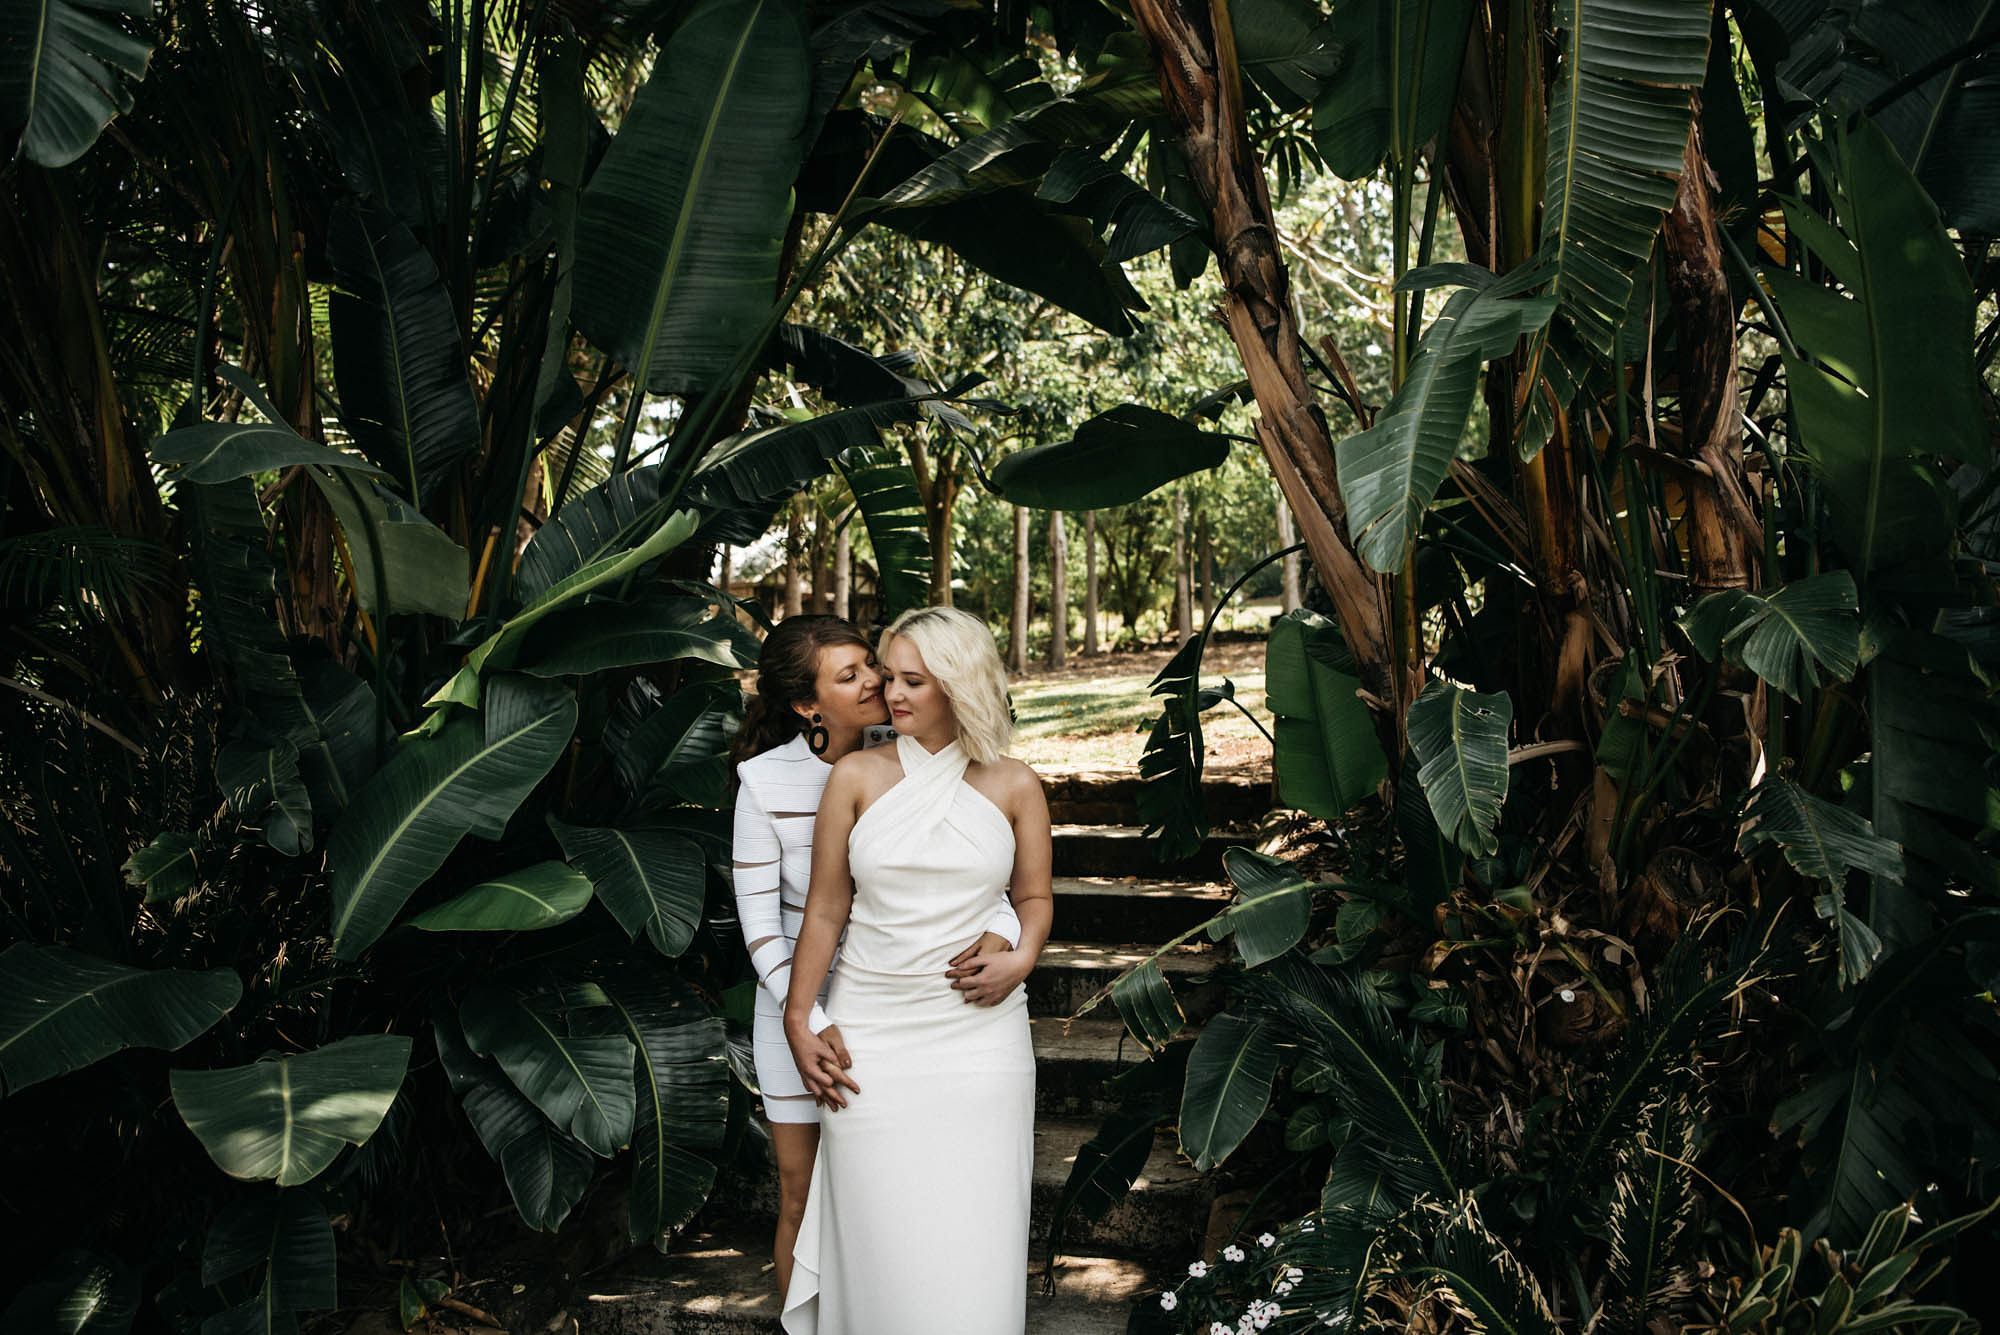 Two ladies both in white standing amongst green palms.